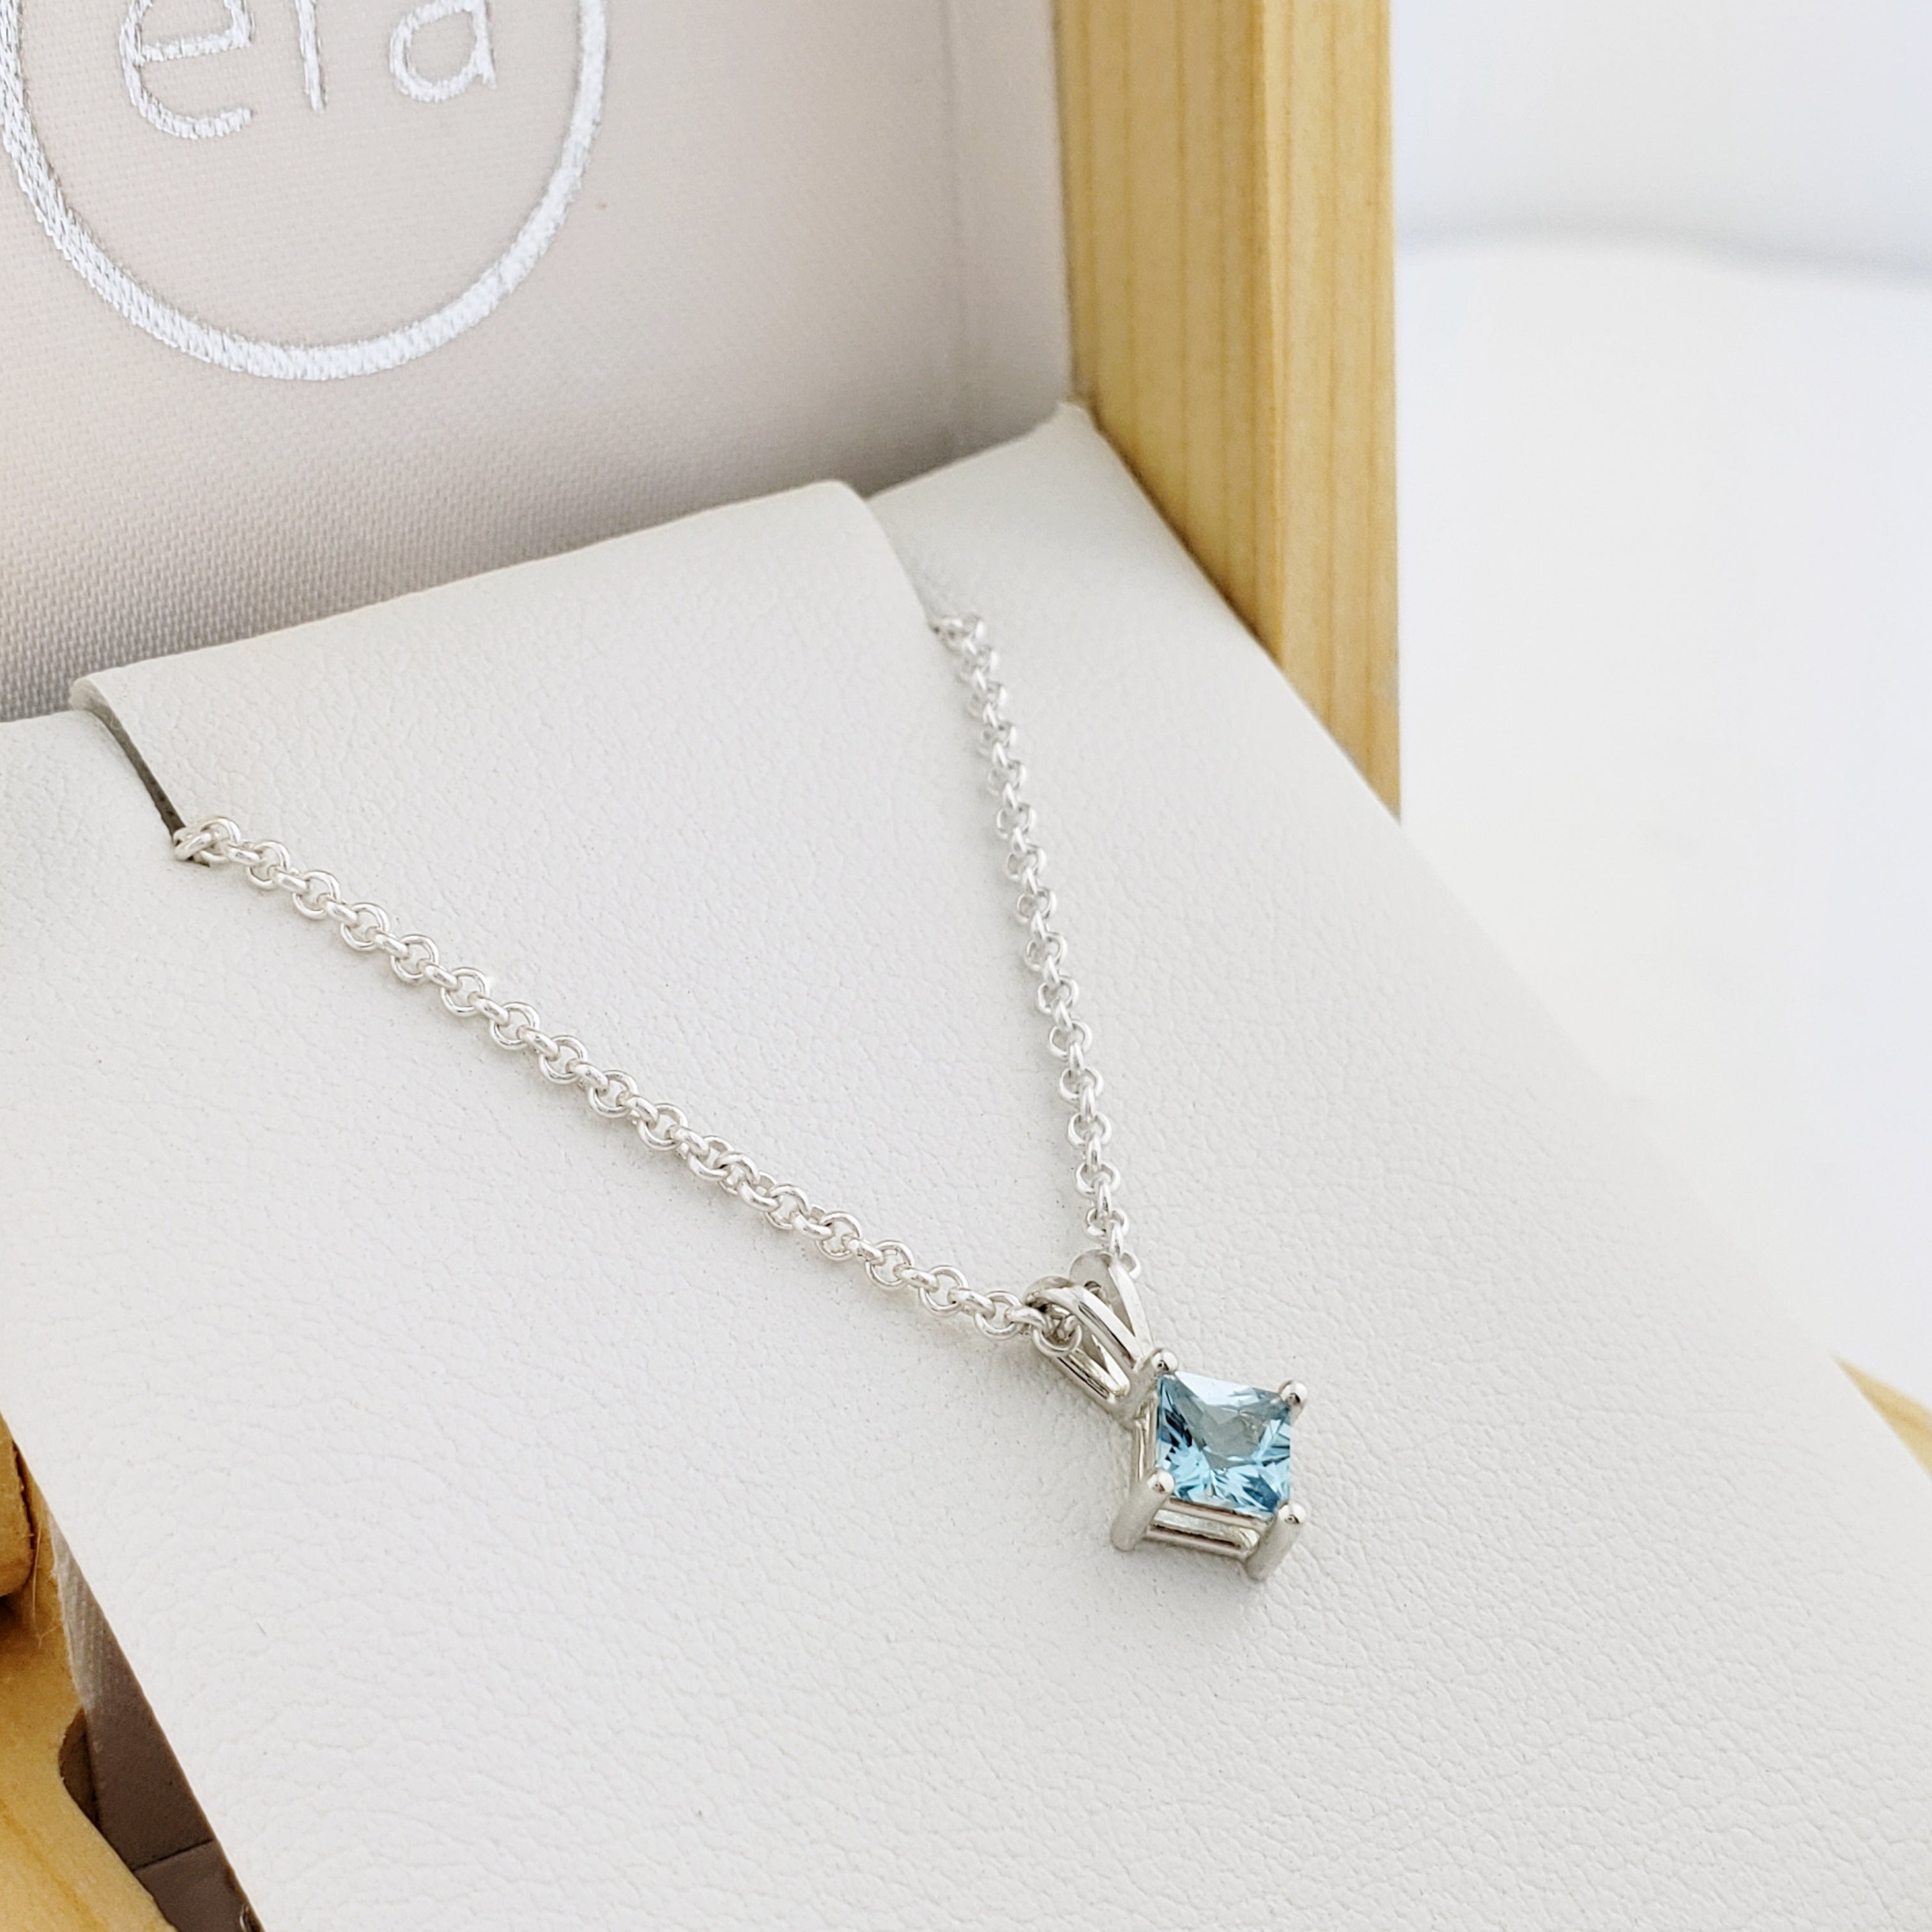 Blue Topaz Sterling Silver Necklace | Era Design Vancouver Canada